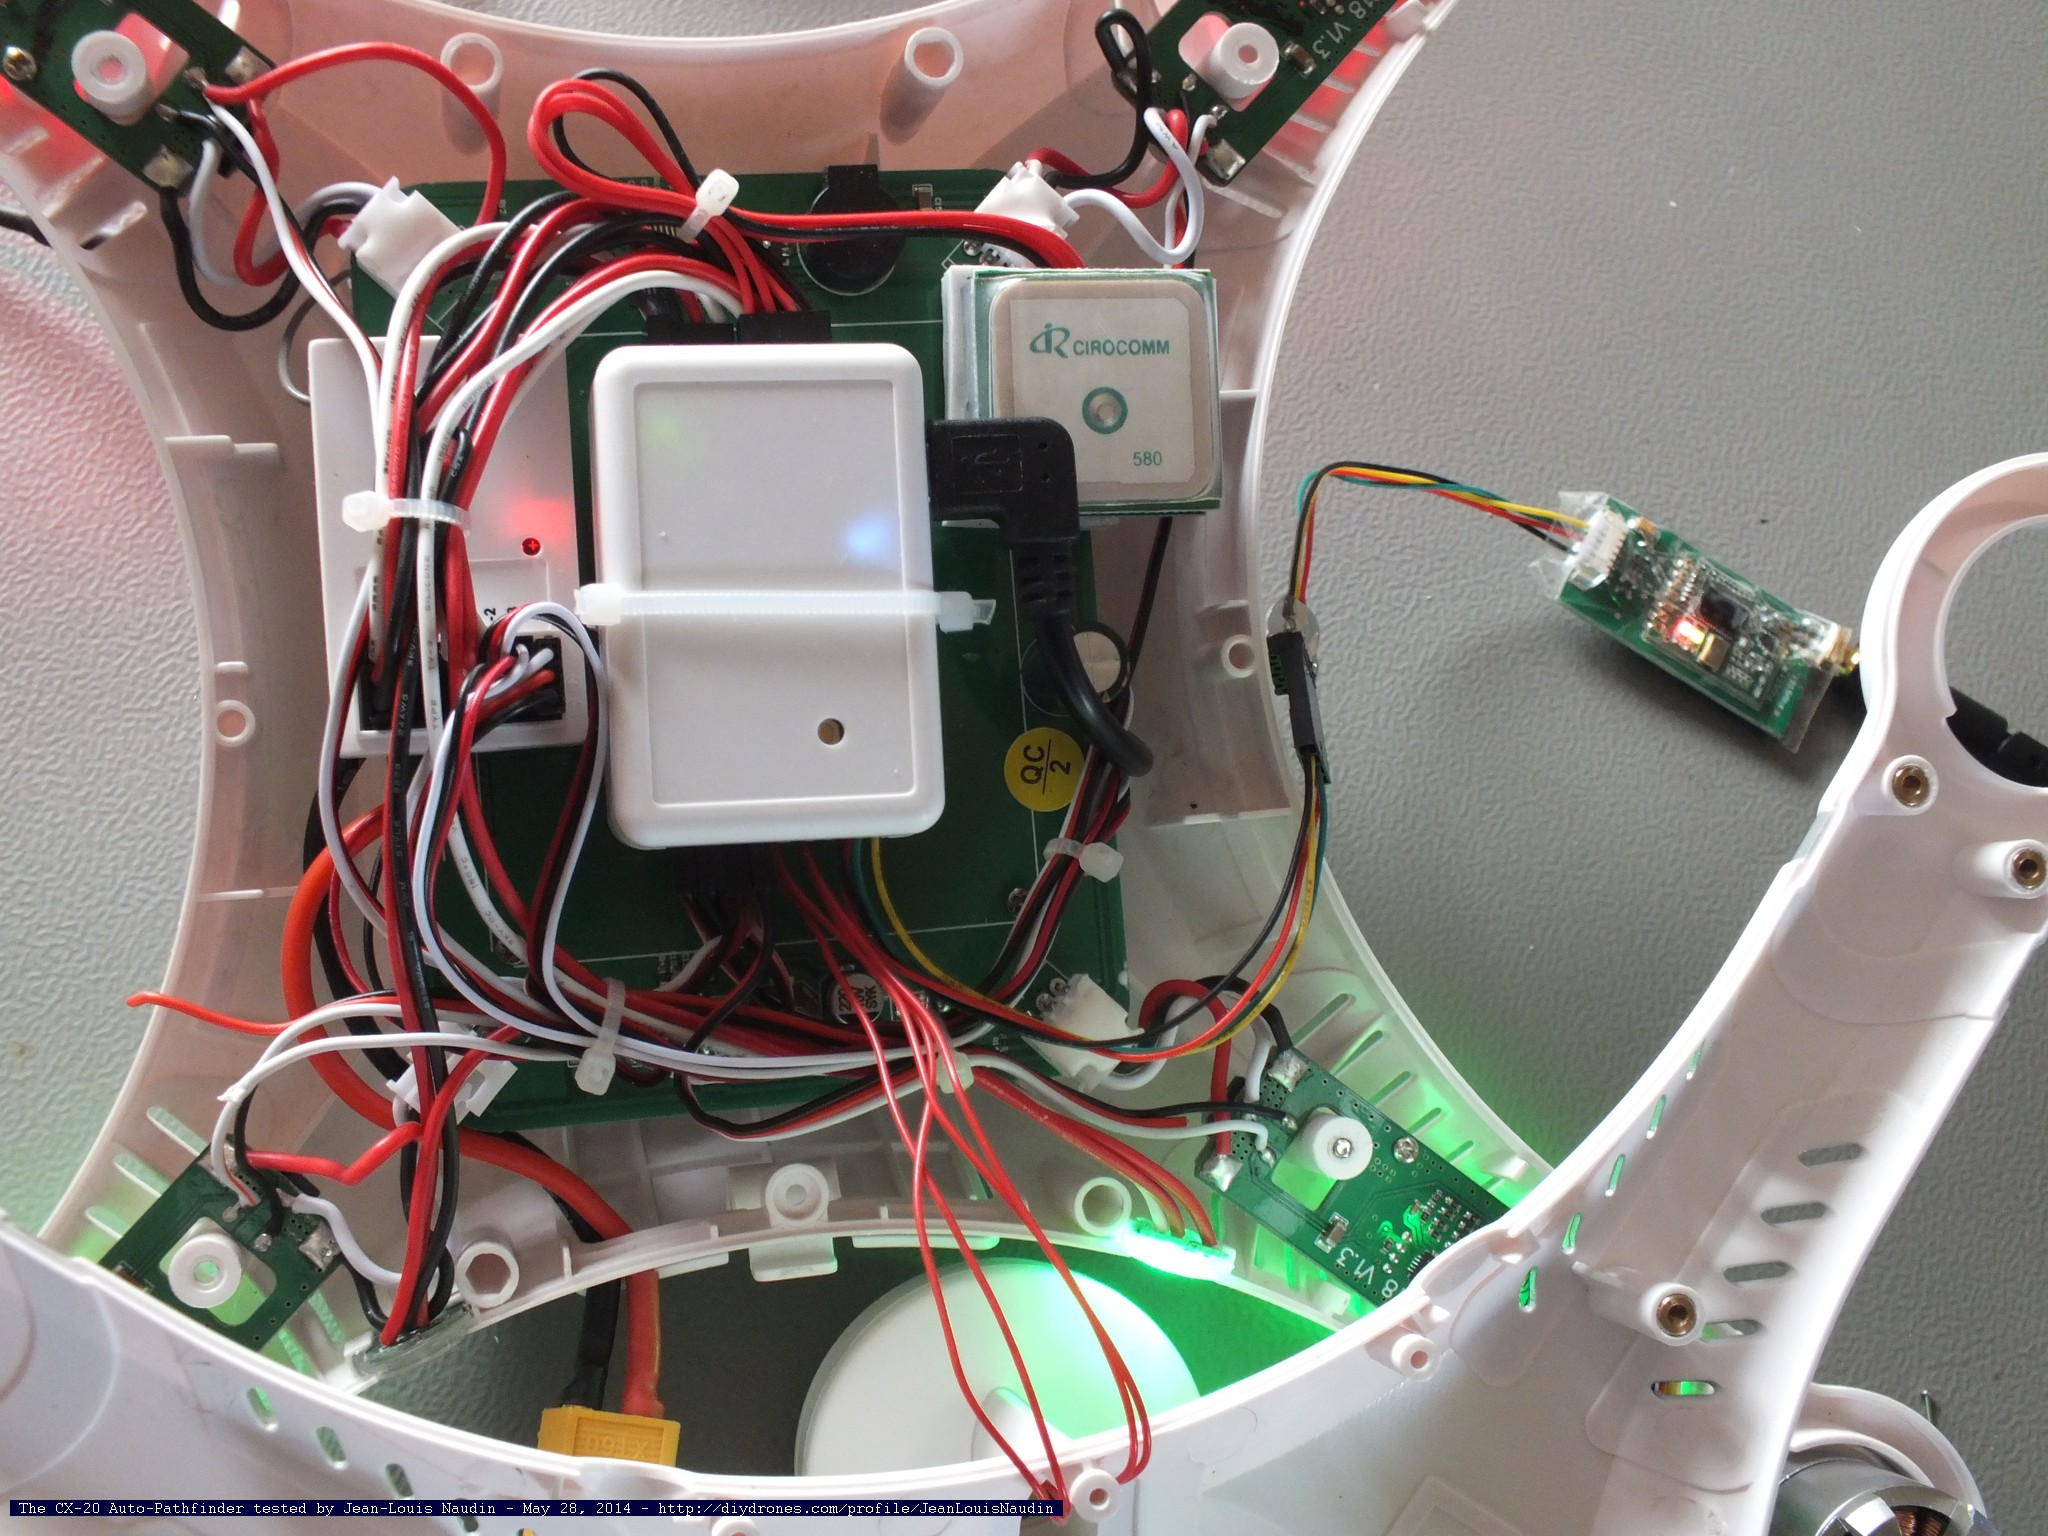 CX20jln03 tuto connecting the telemetry to the cheerson cx 20 (aka the cheerson cx20 wiring diagram at bayanpartner.co